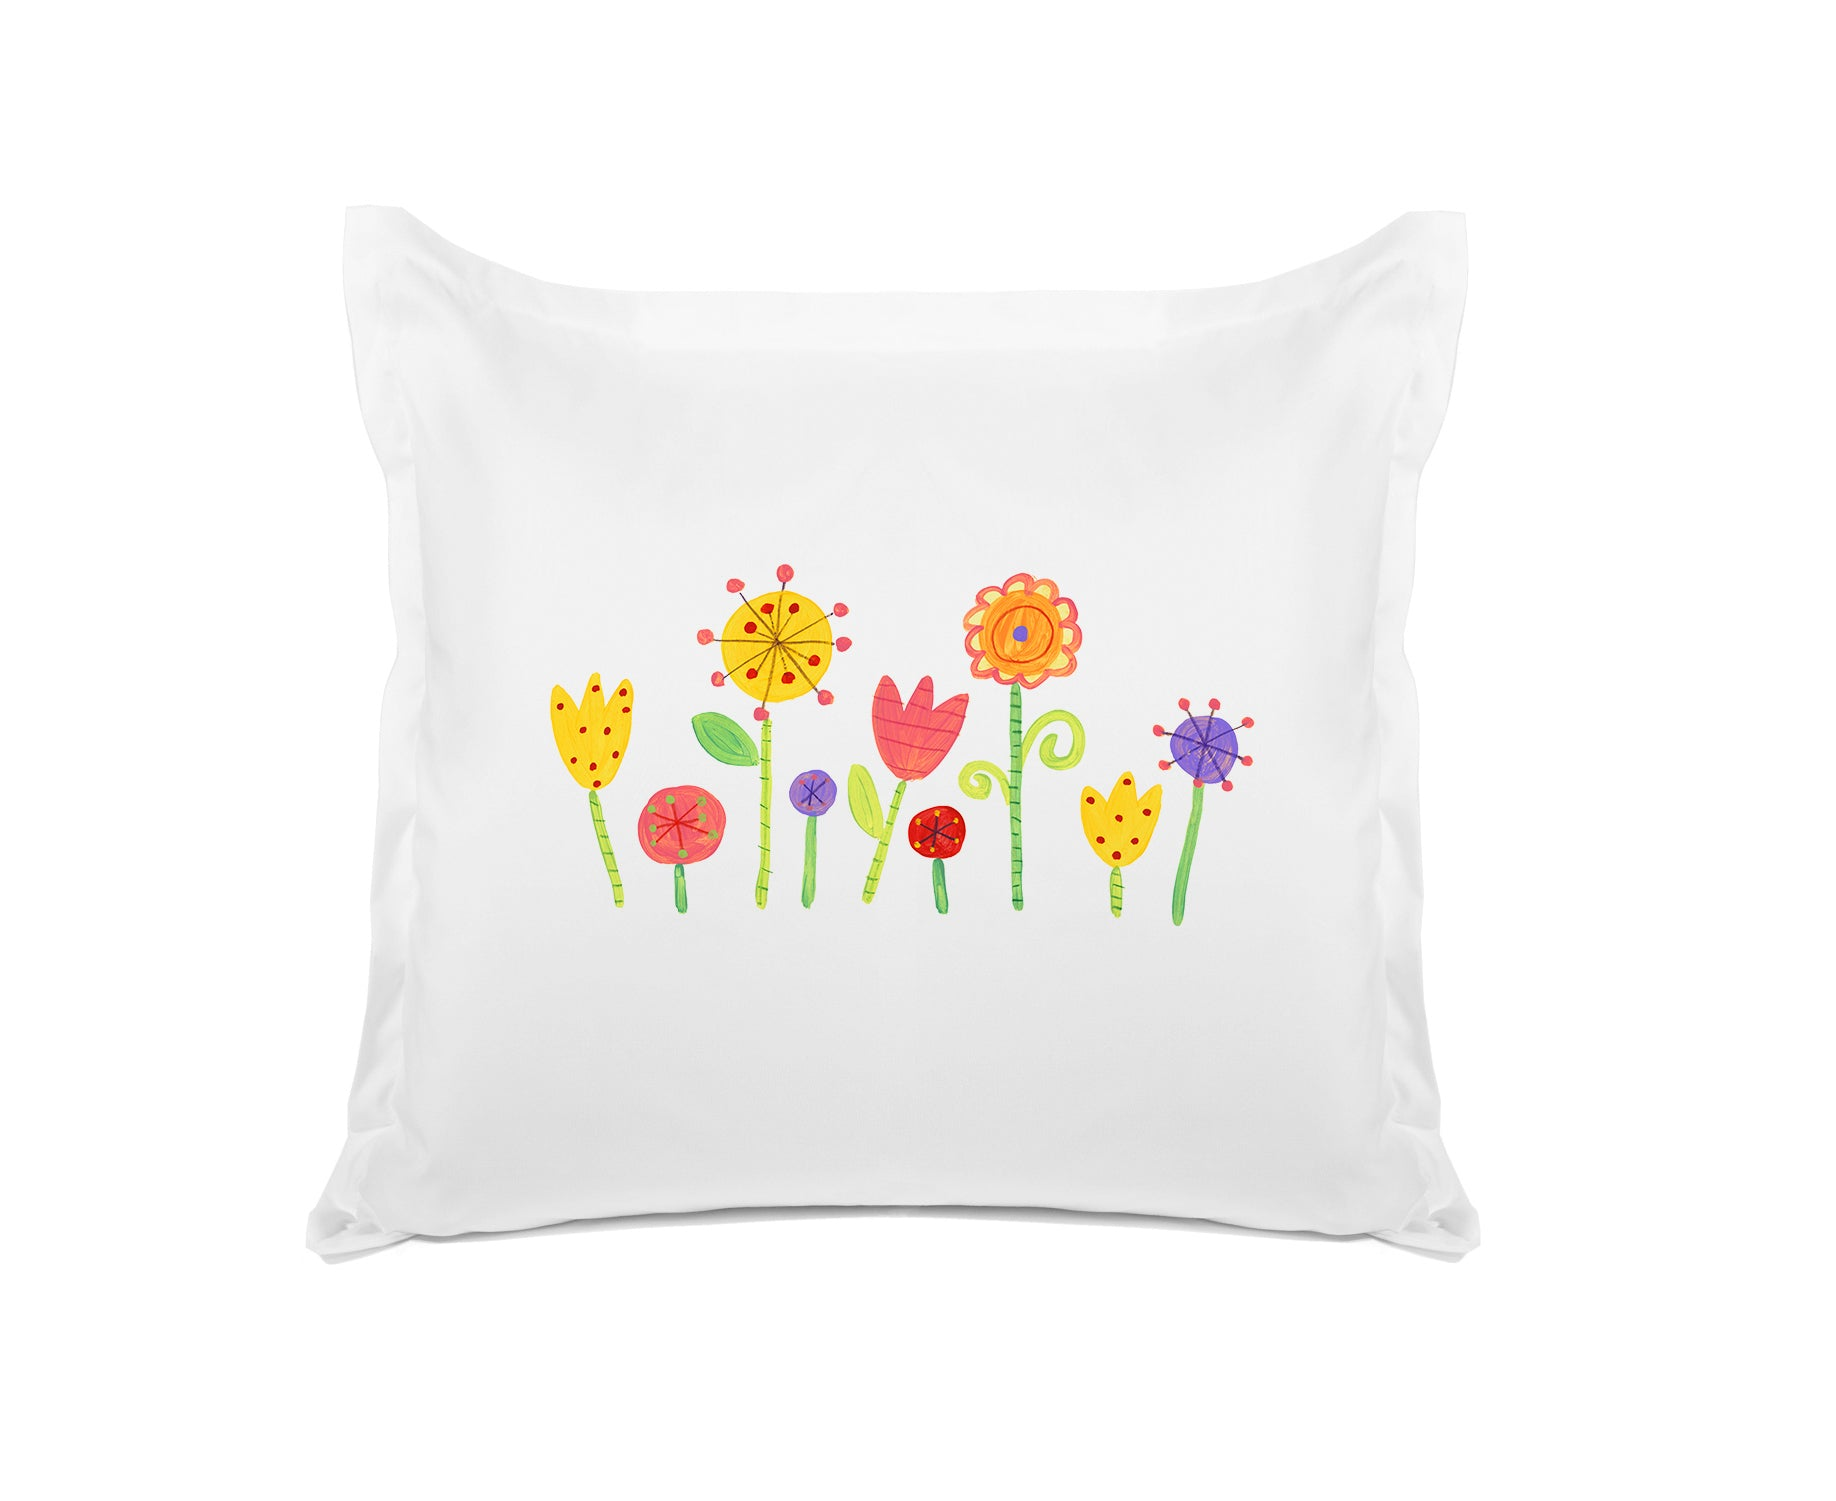 My Garden - Personalized Kids Pillowcase Collection-Di Lewis